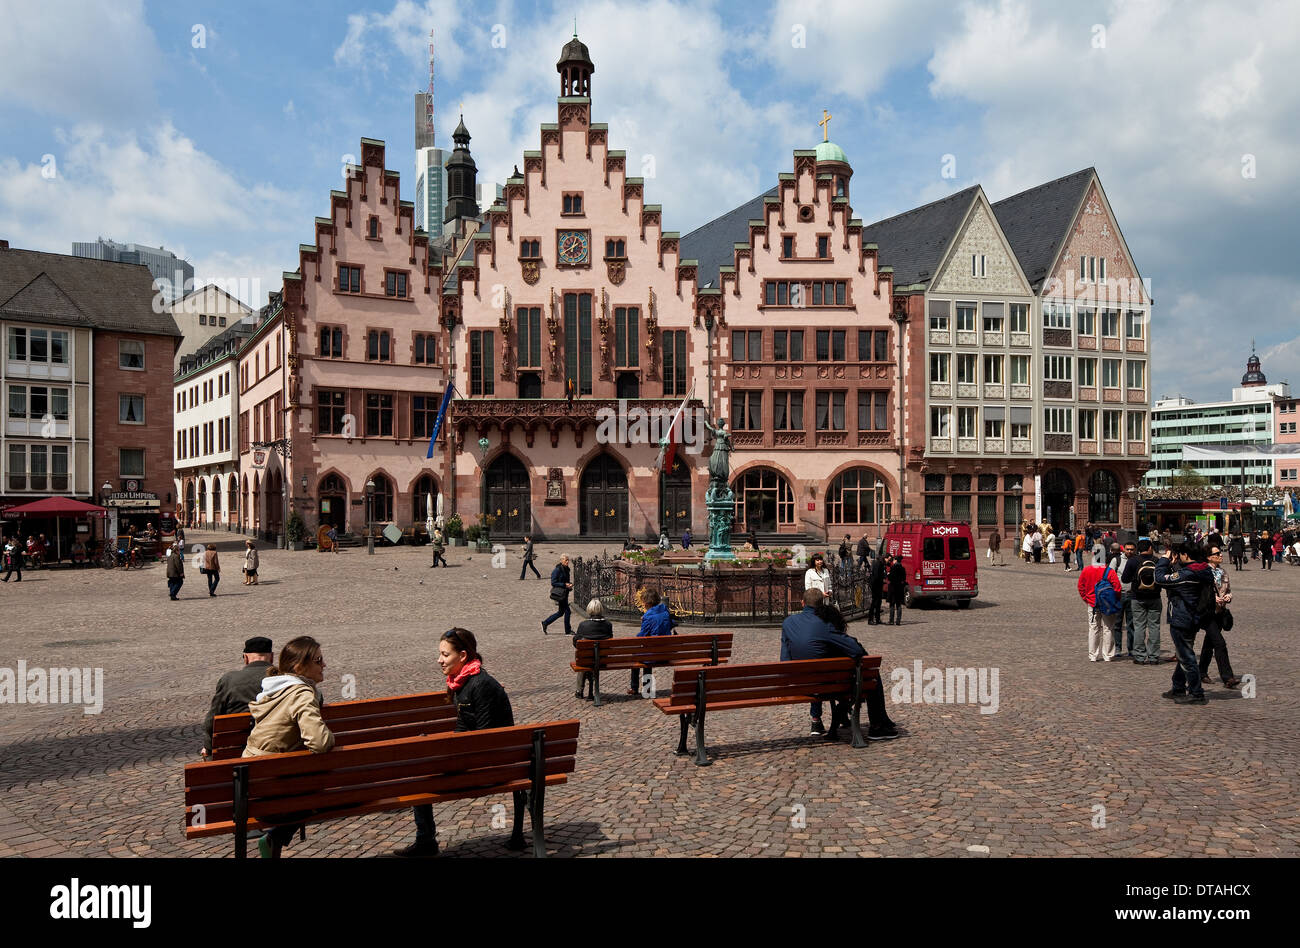 frankfurt am main marktplatz stock photo 66616058 alamy. Black Bedroom Furniture Sets. Home Design Ideas